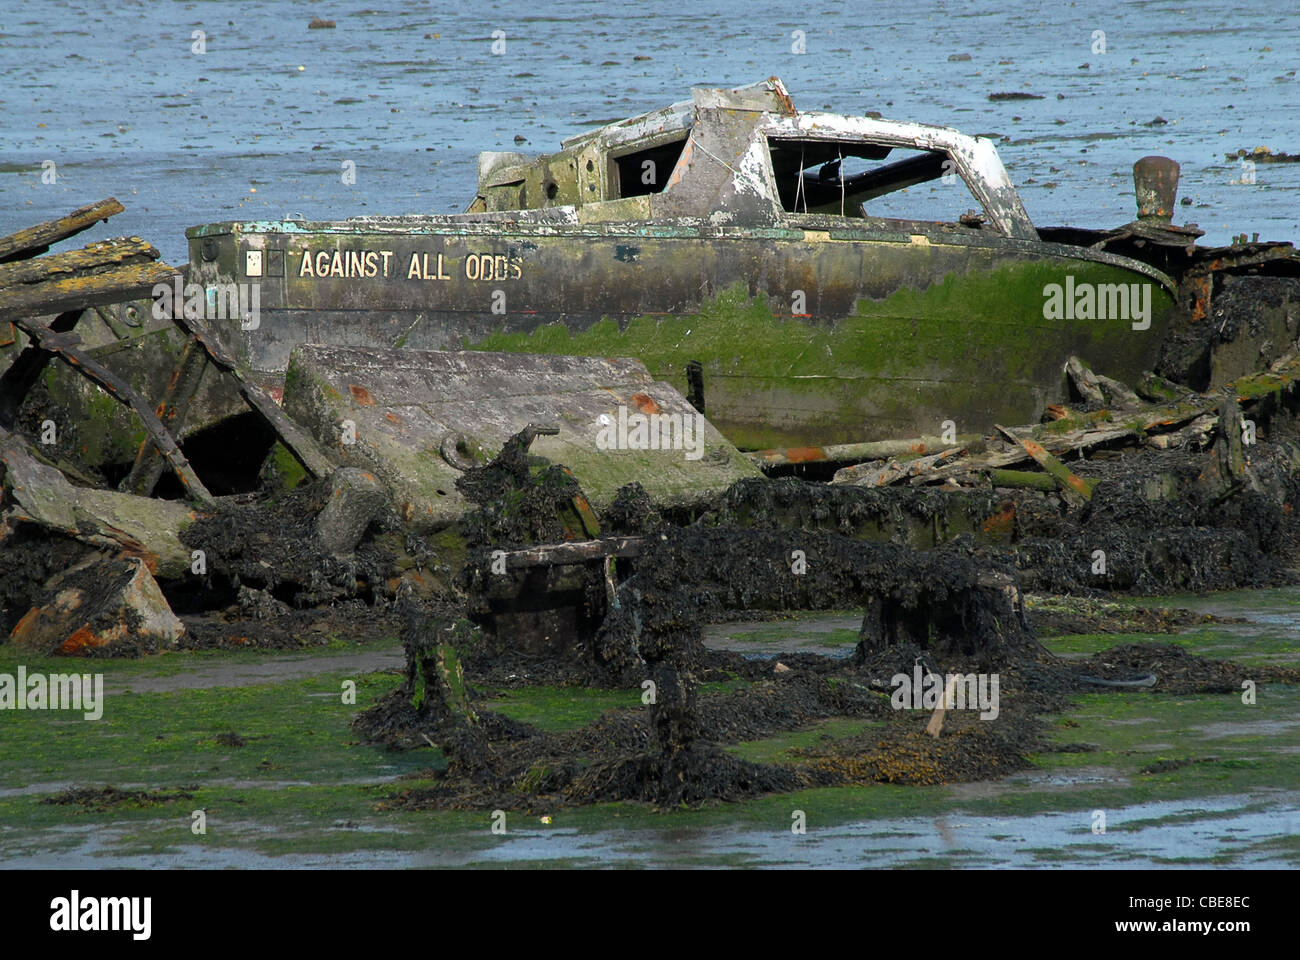 WRECKED BOAT,  AGAINST ALL ODDS PORTCHESTER, HAMPSHIRE. - Stock Image